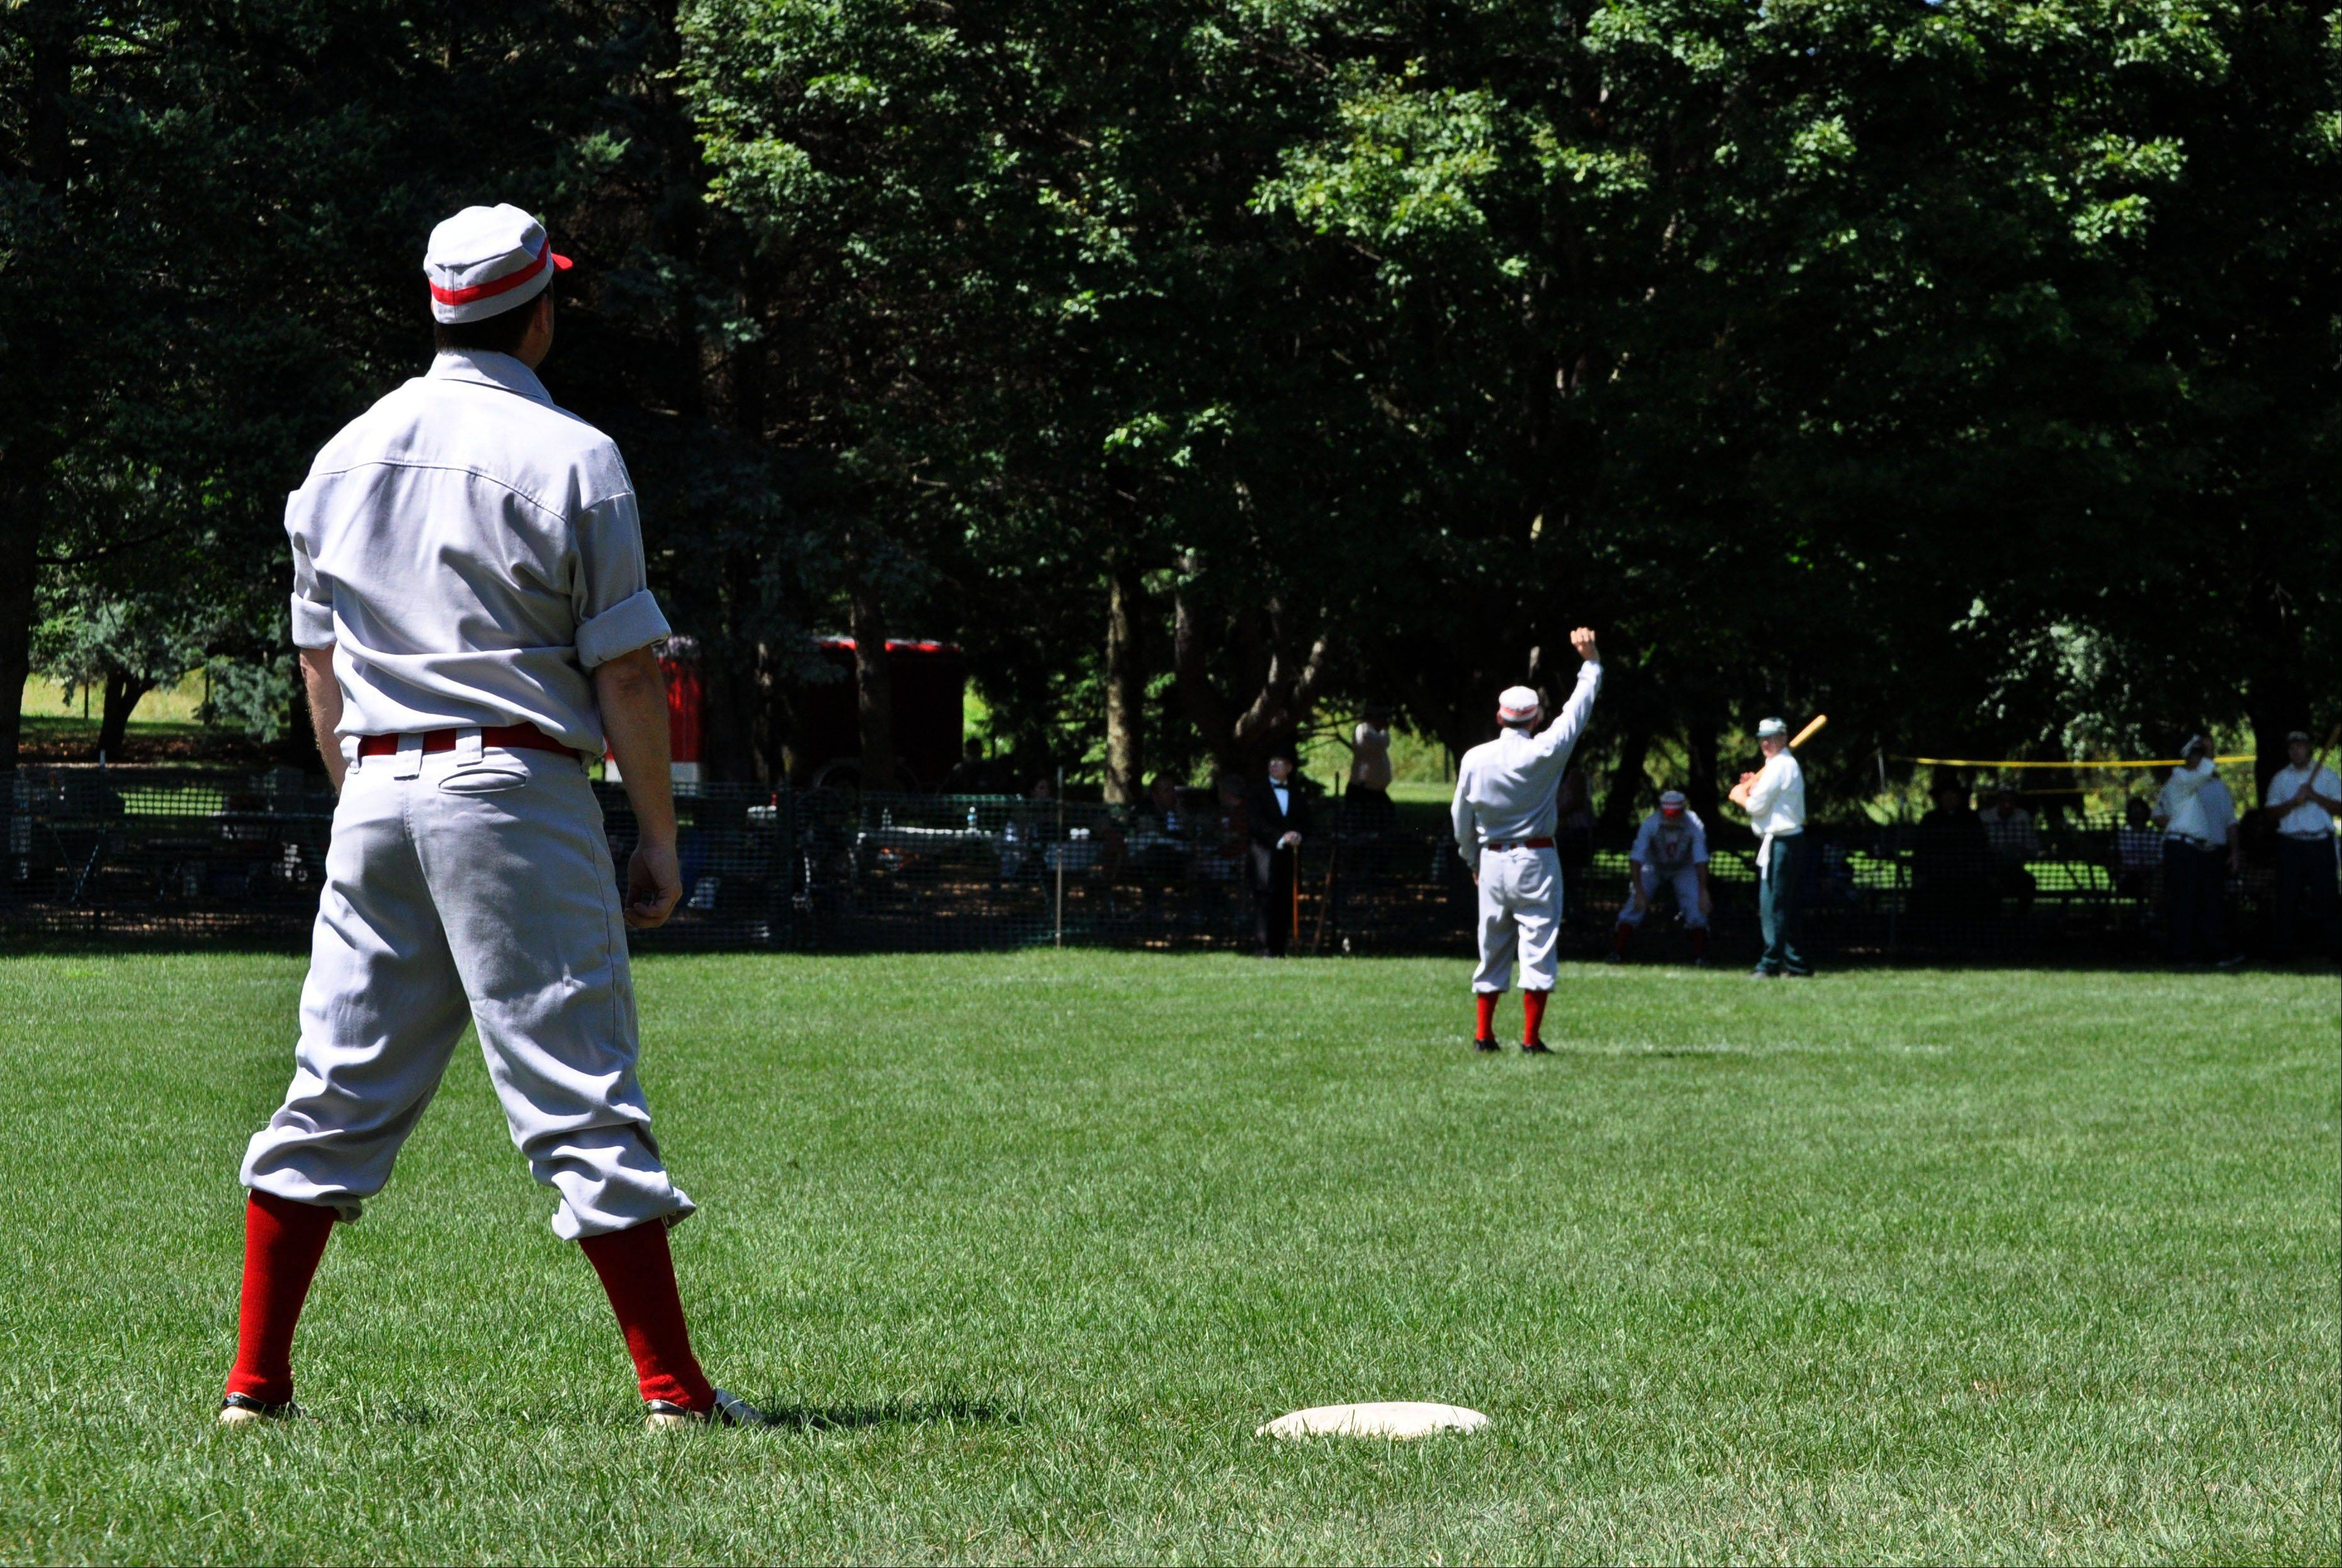 See what it's like to play baseball in proper 19th-century fashion with the McHenry County Historical Society.